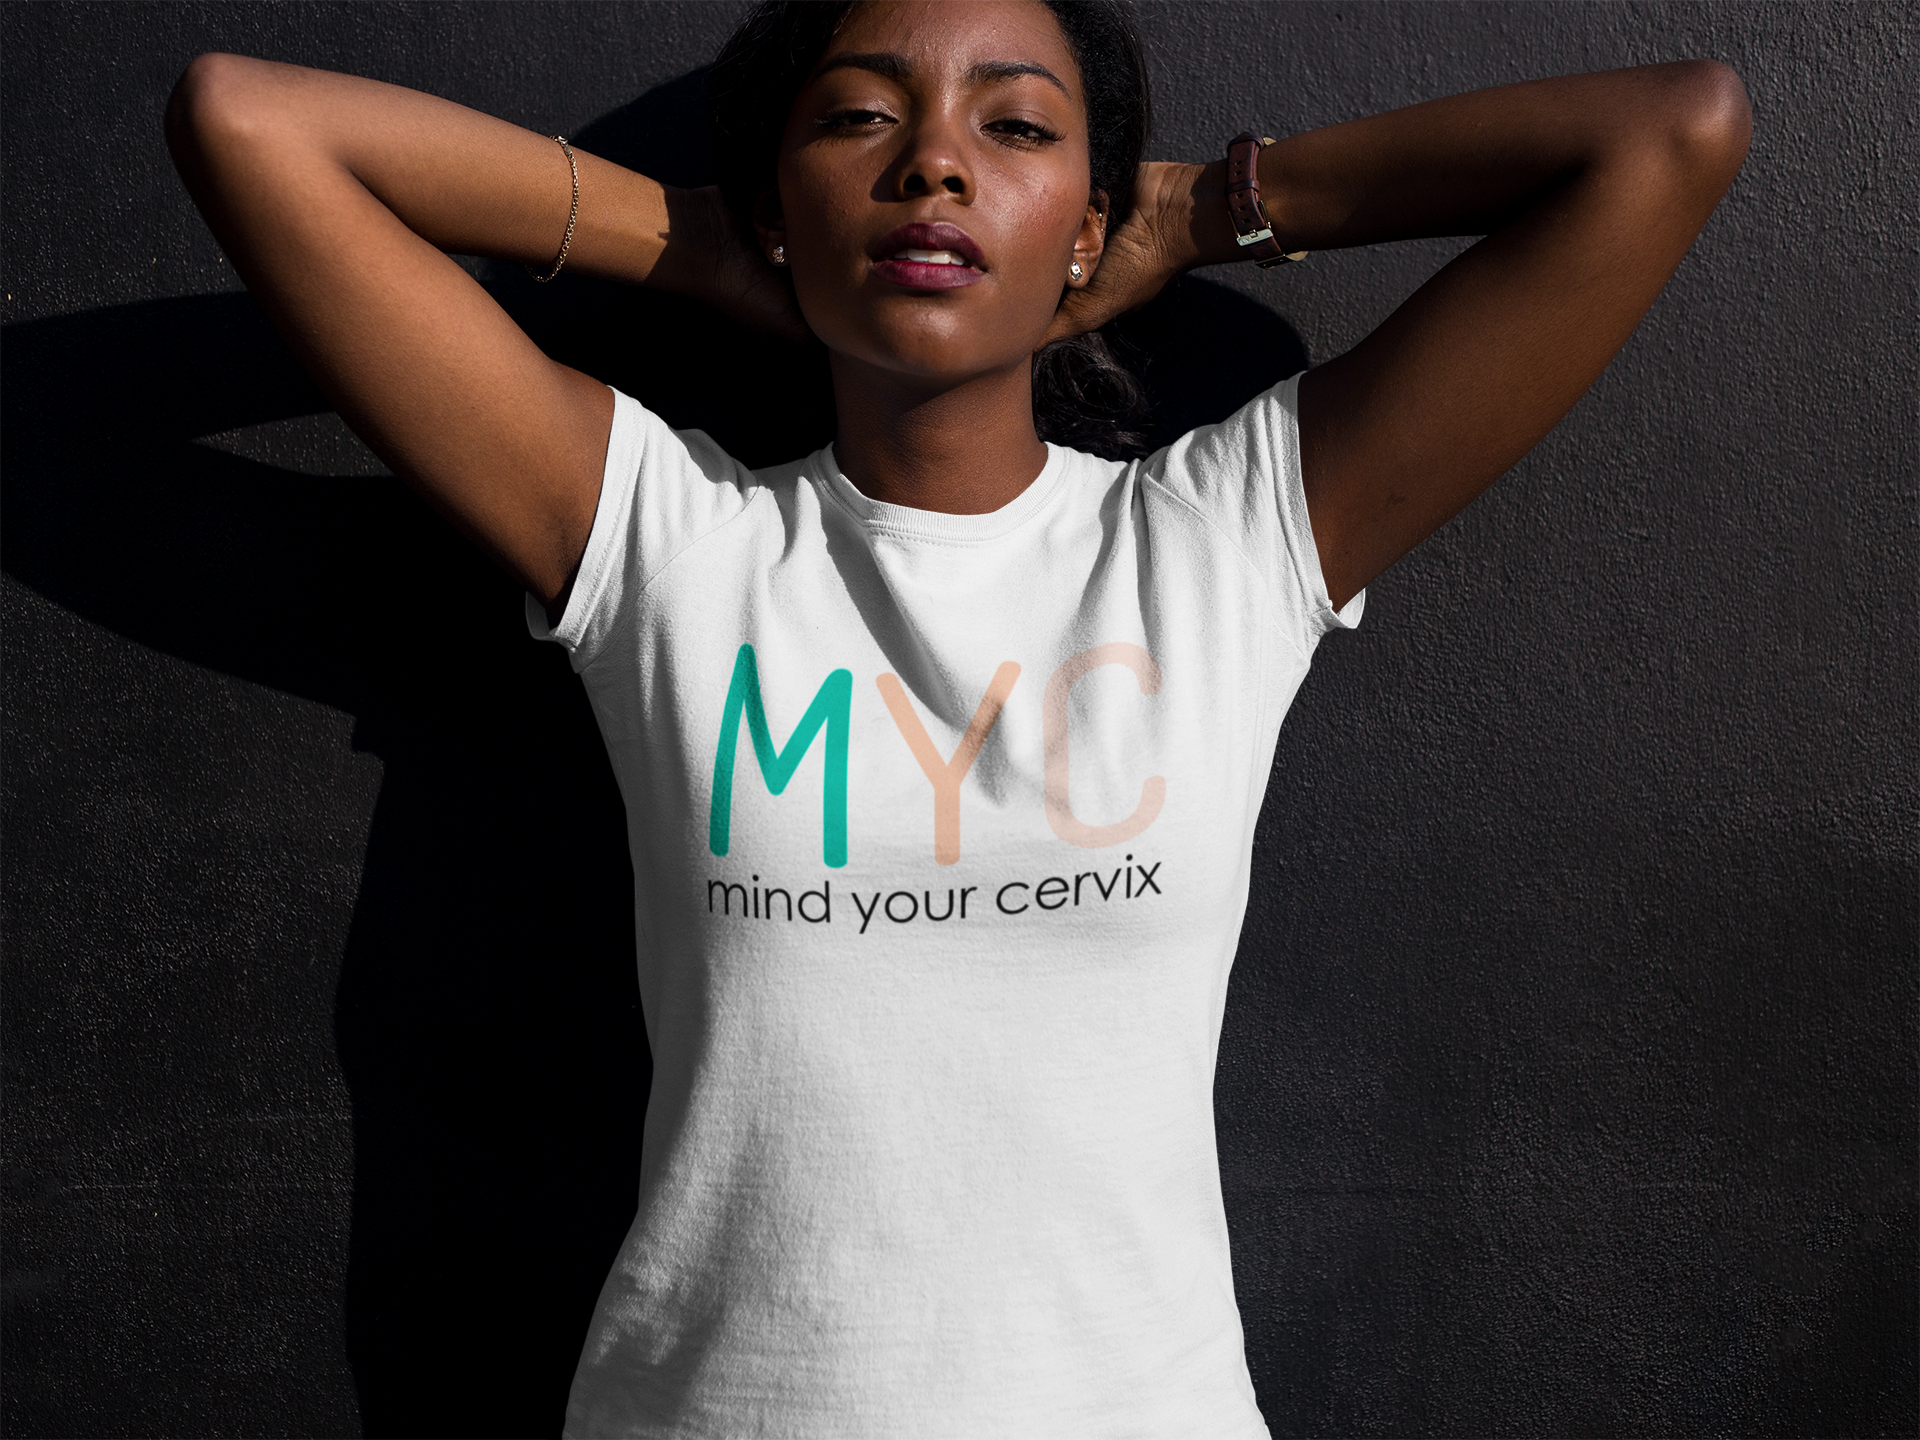 young-black-girl-looking-to-the-camera-while-wearing-a-tshirt-mockup-a16070.png